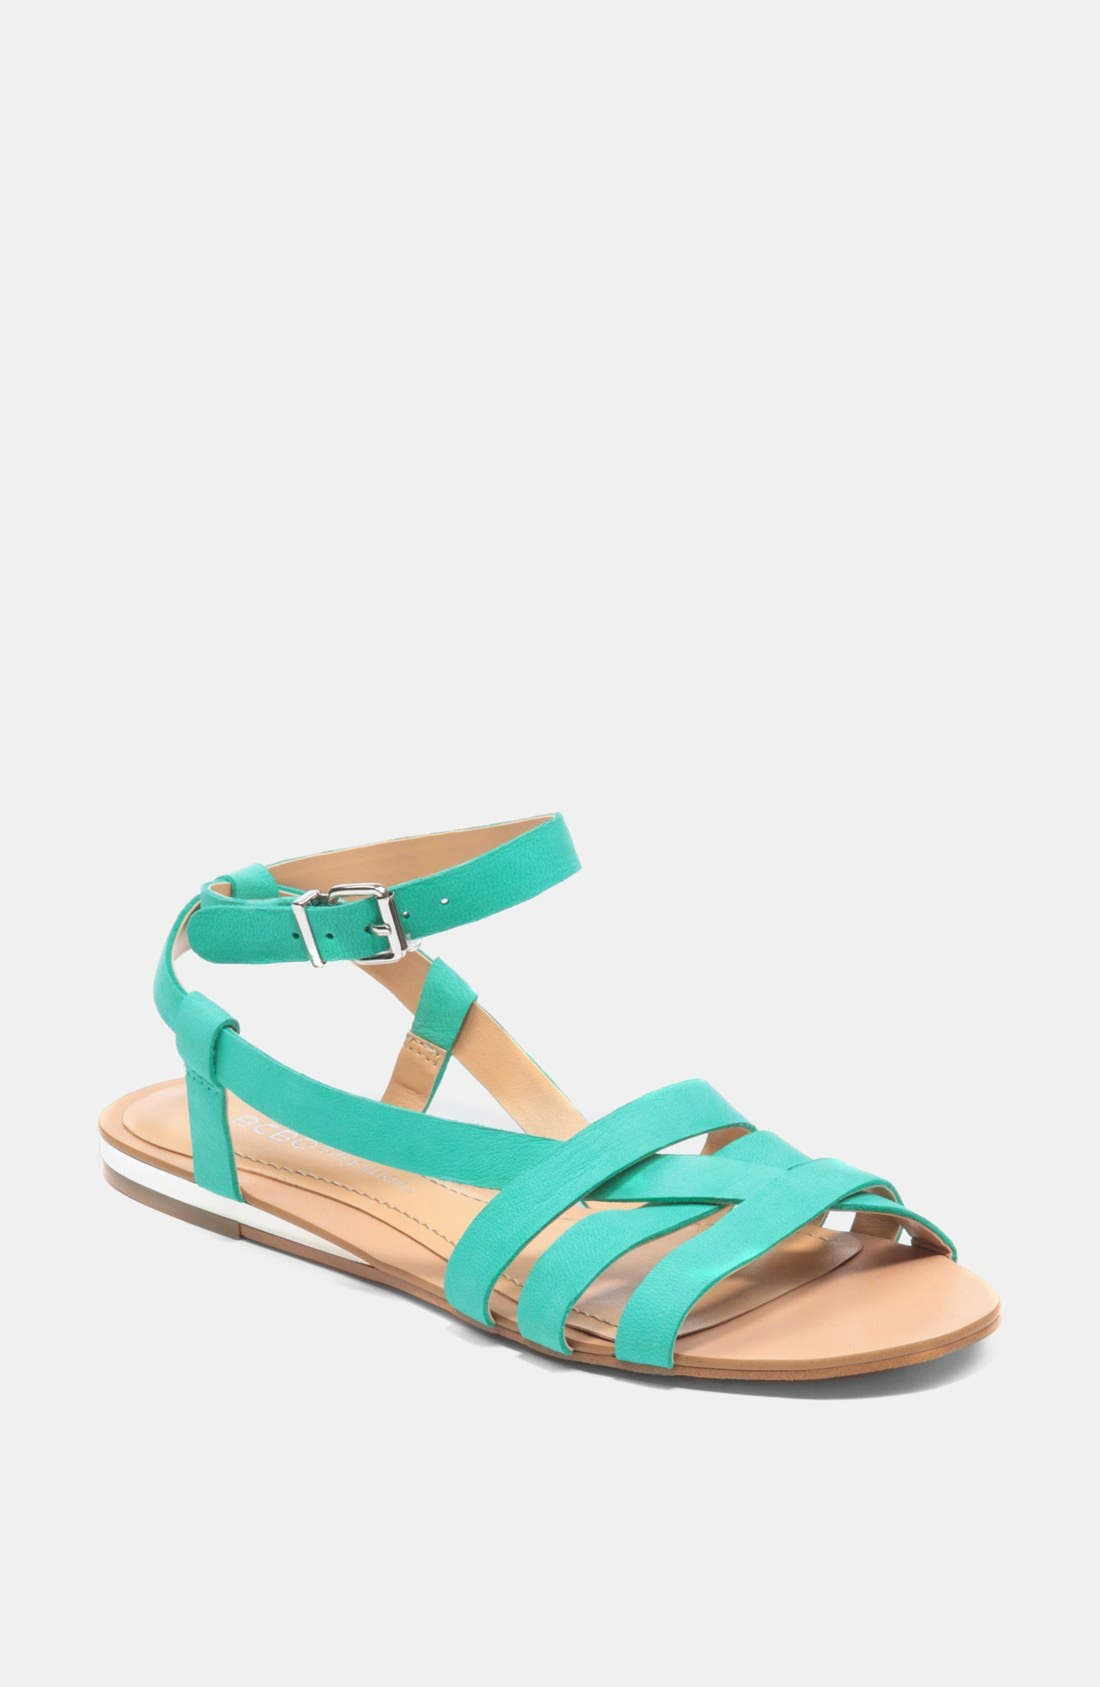 Main Image - BCBGeneration 'Rossie' Sandal